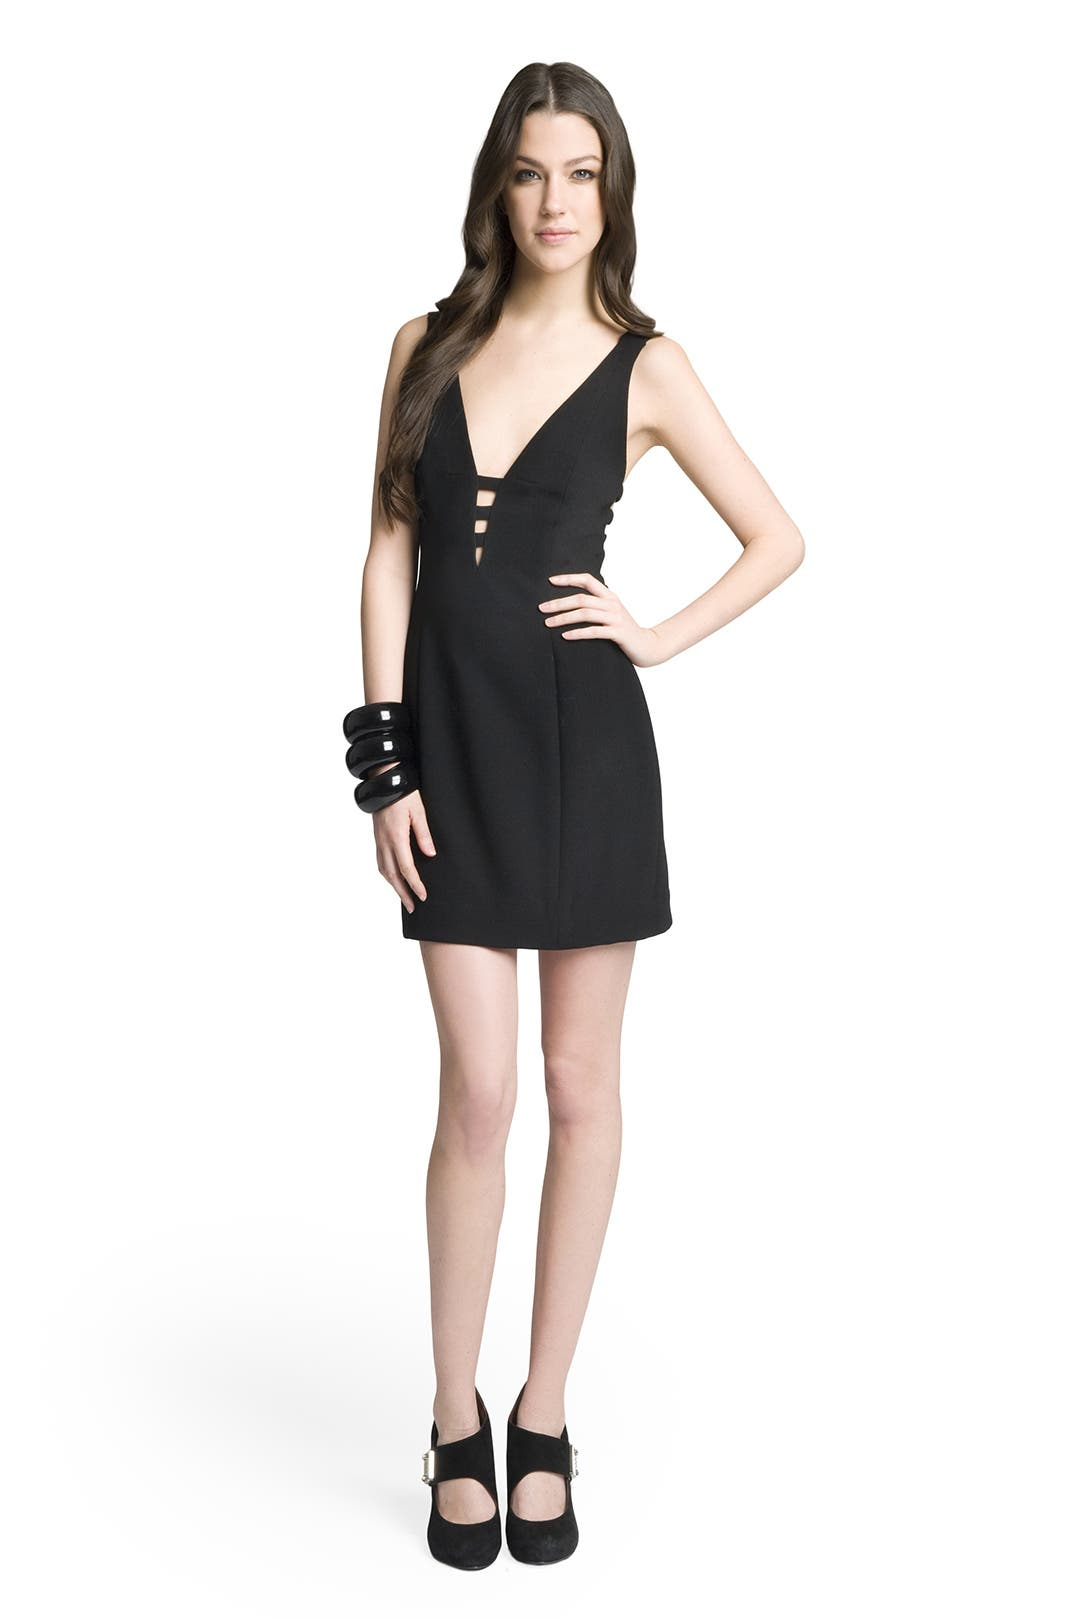 The Wow Dress by Vena Cava